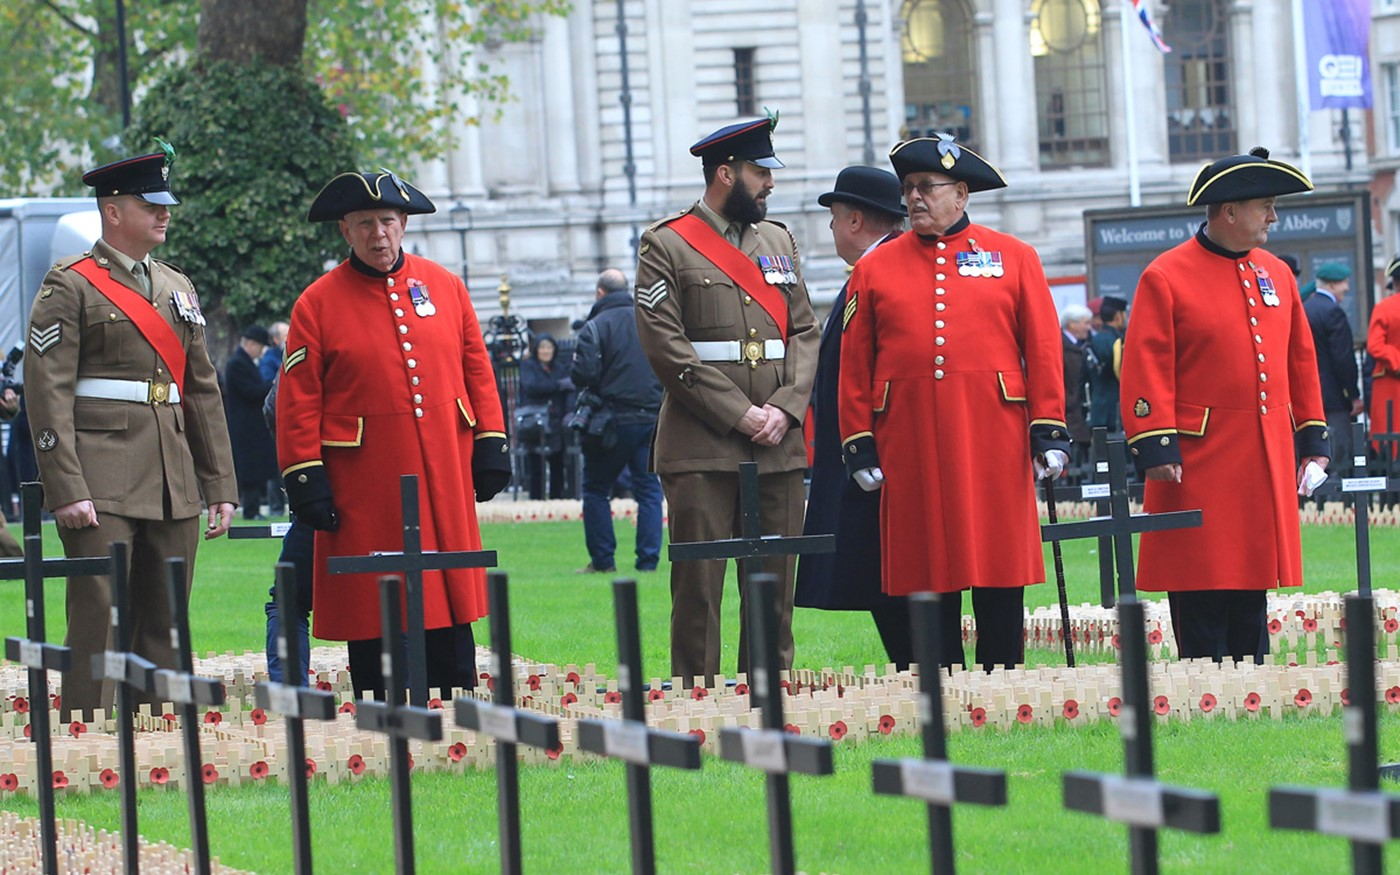 Chelsea Pensioners and Service Personnel view the Field of Remembrance